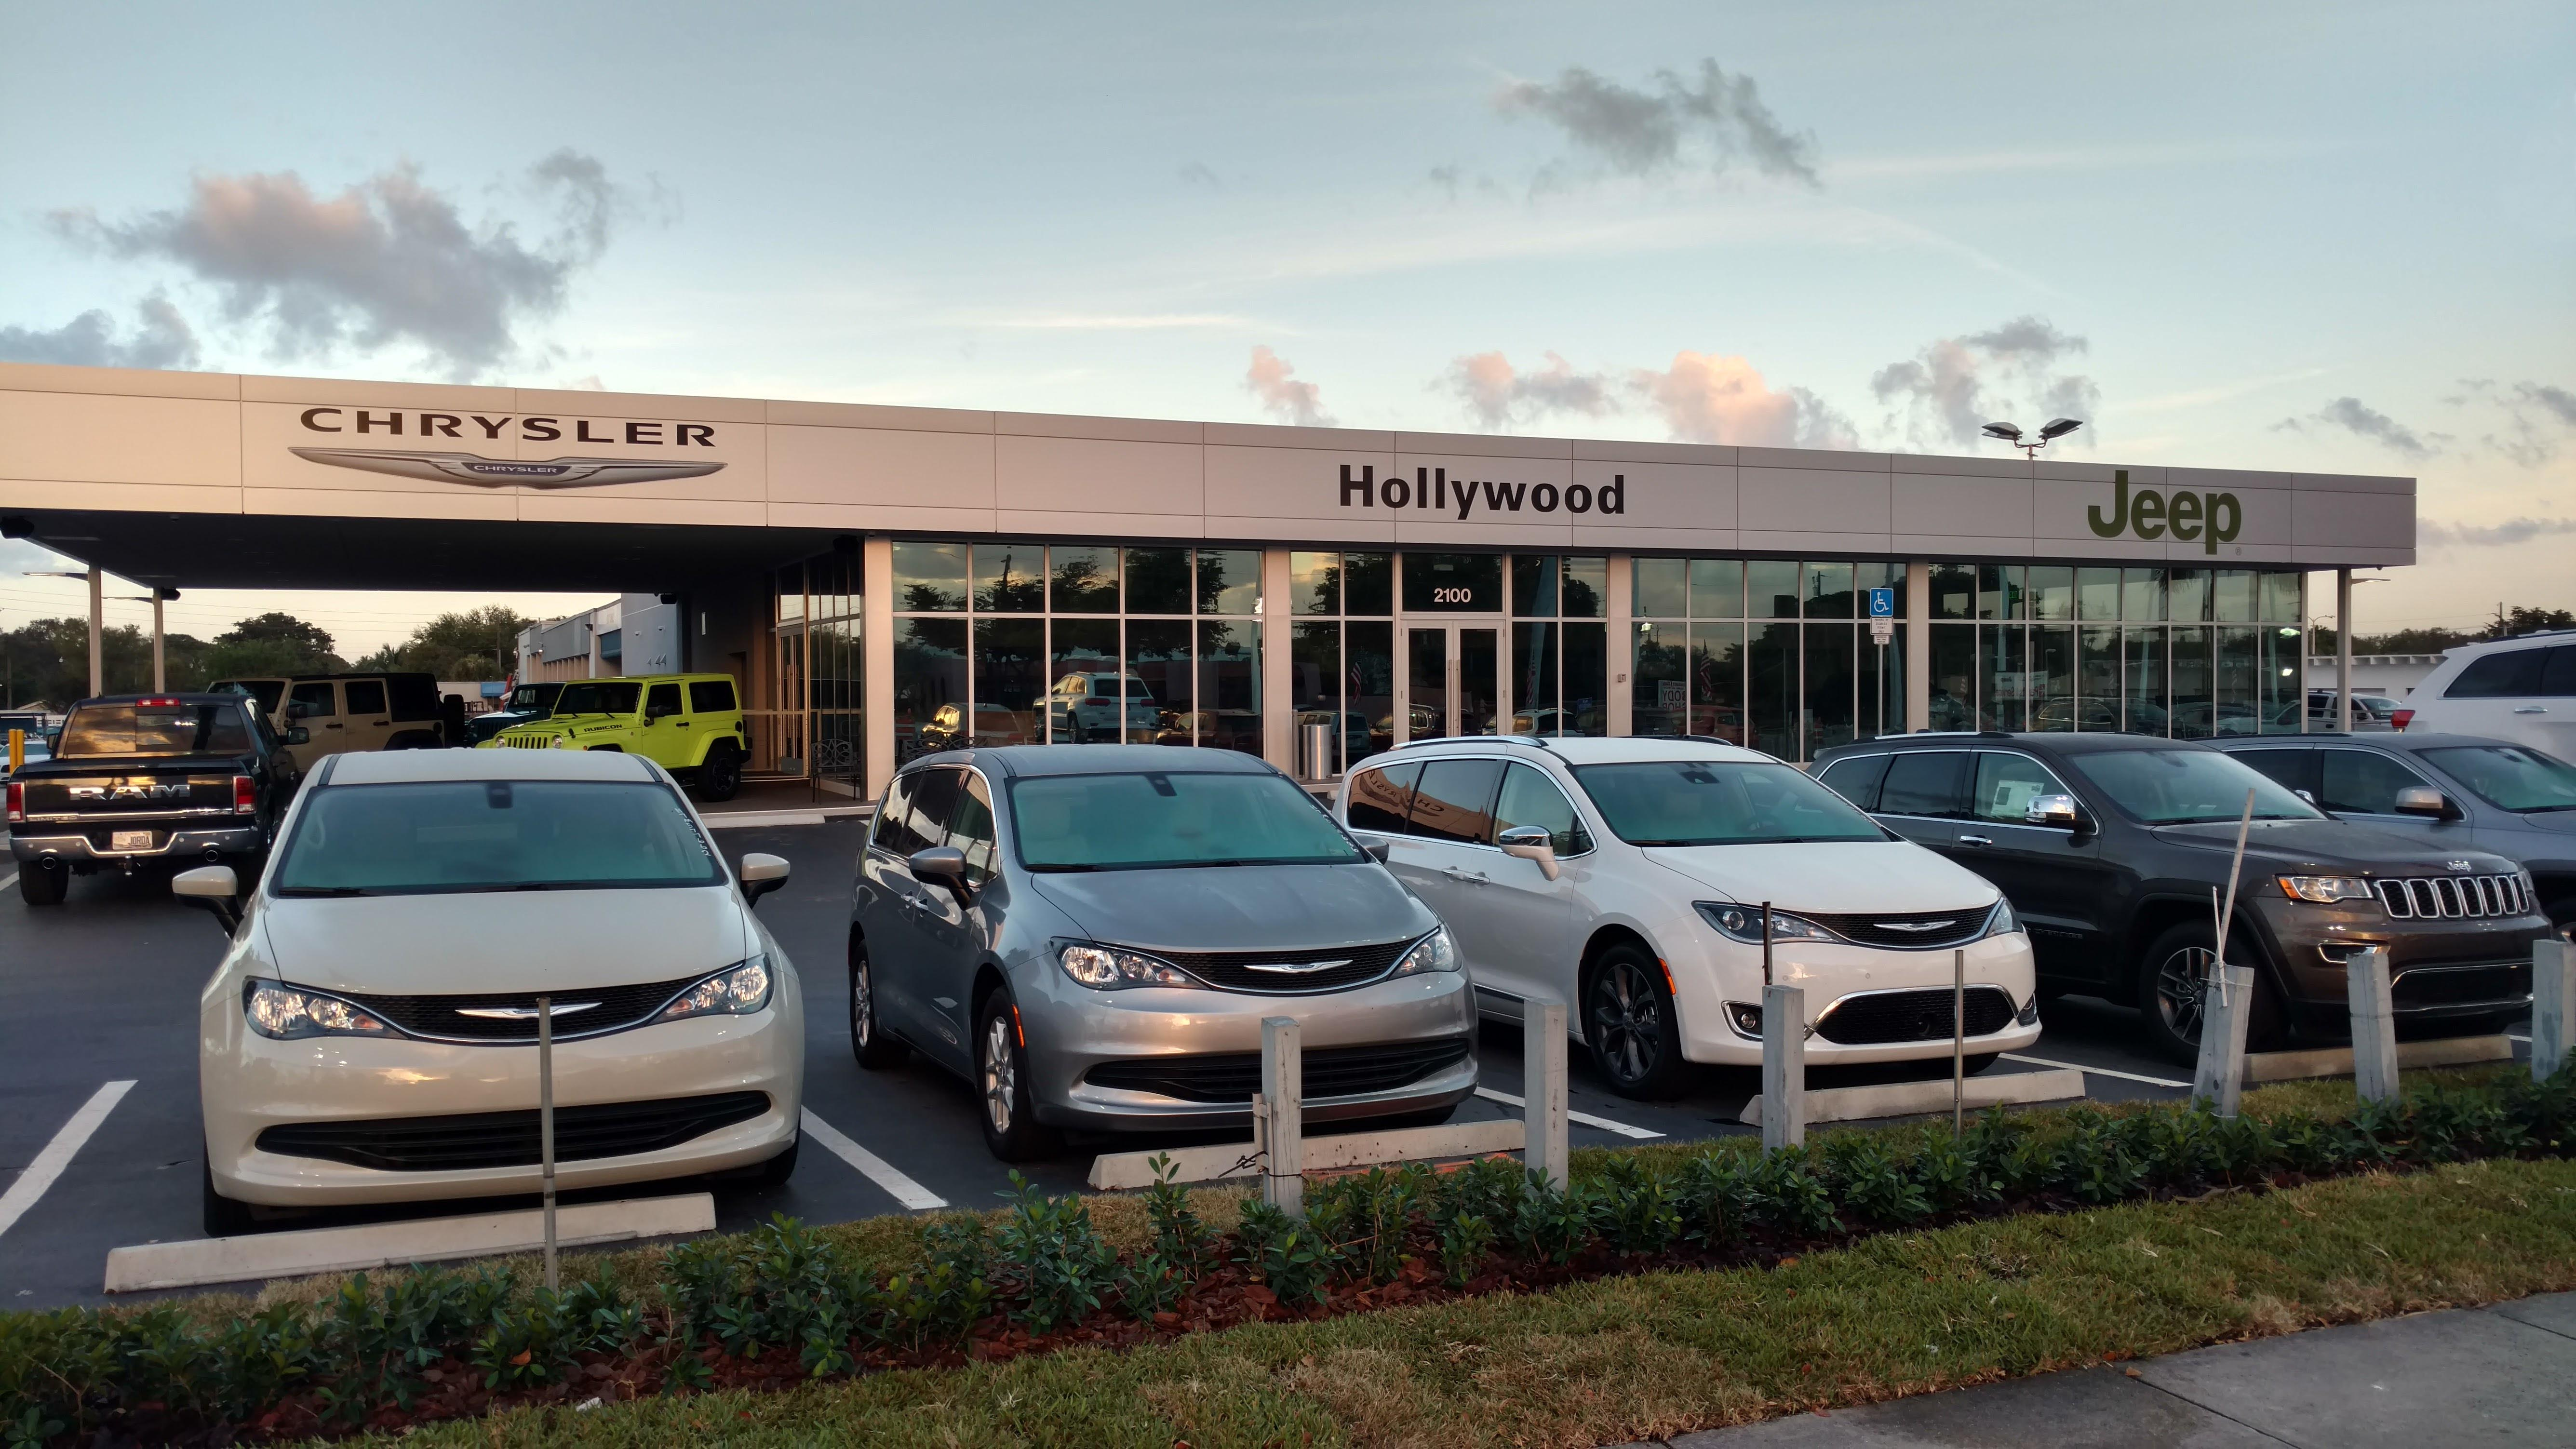 New Hollywood Chrysler Jeep showroom is open